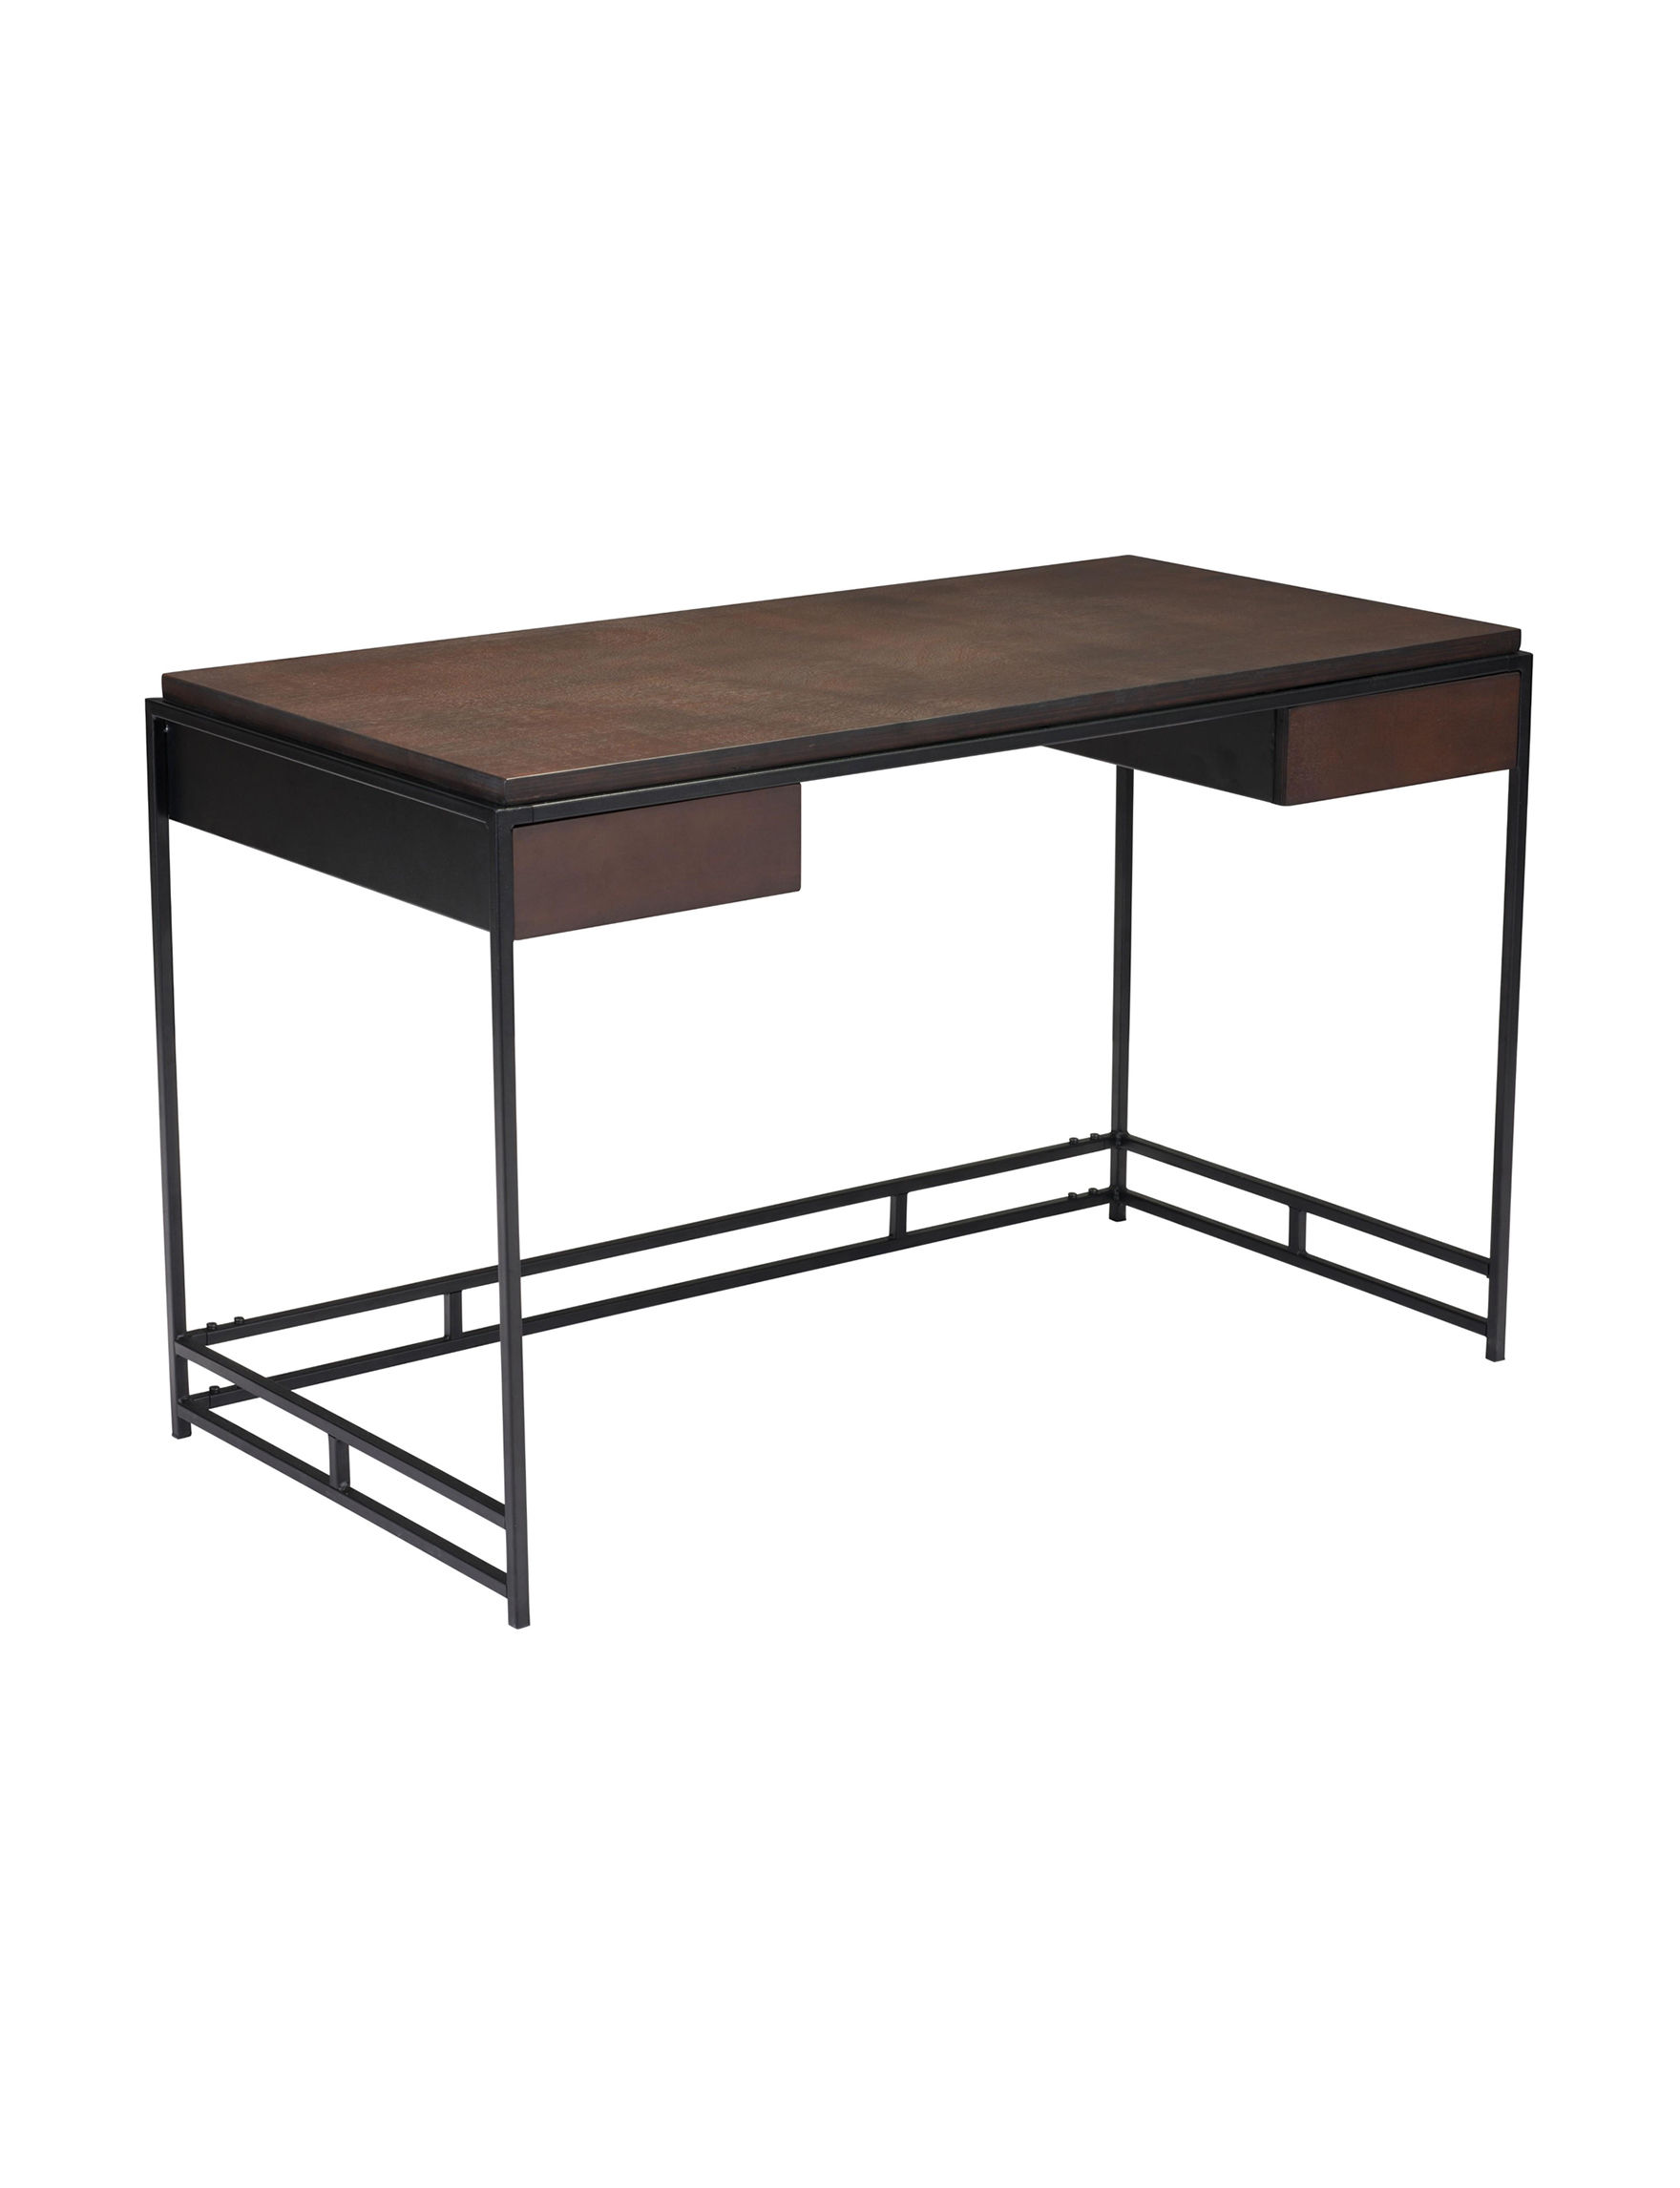 Zuo Modern Espresso Desks Home Office Furniture